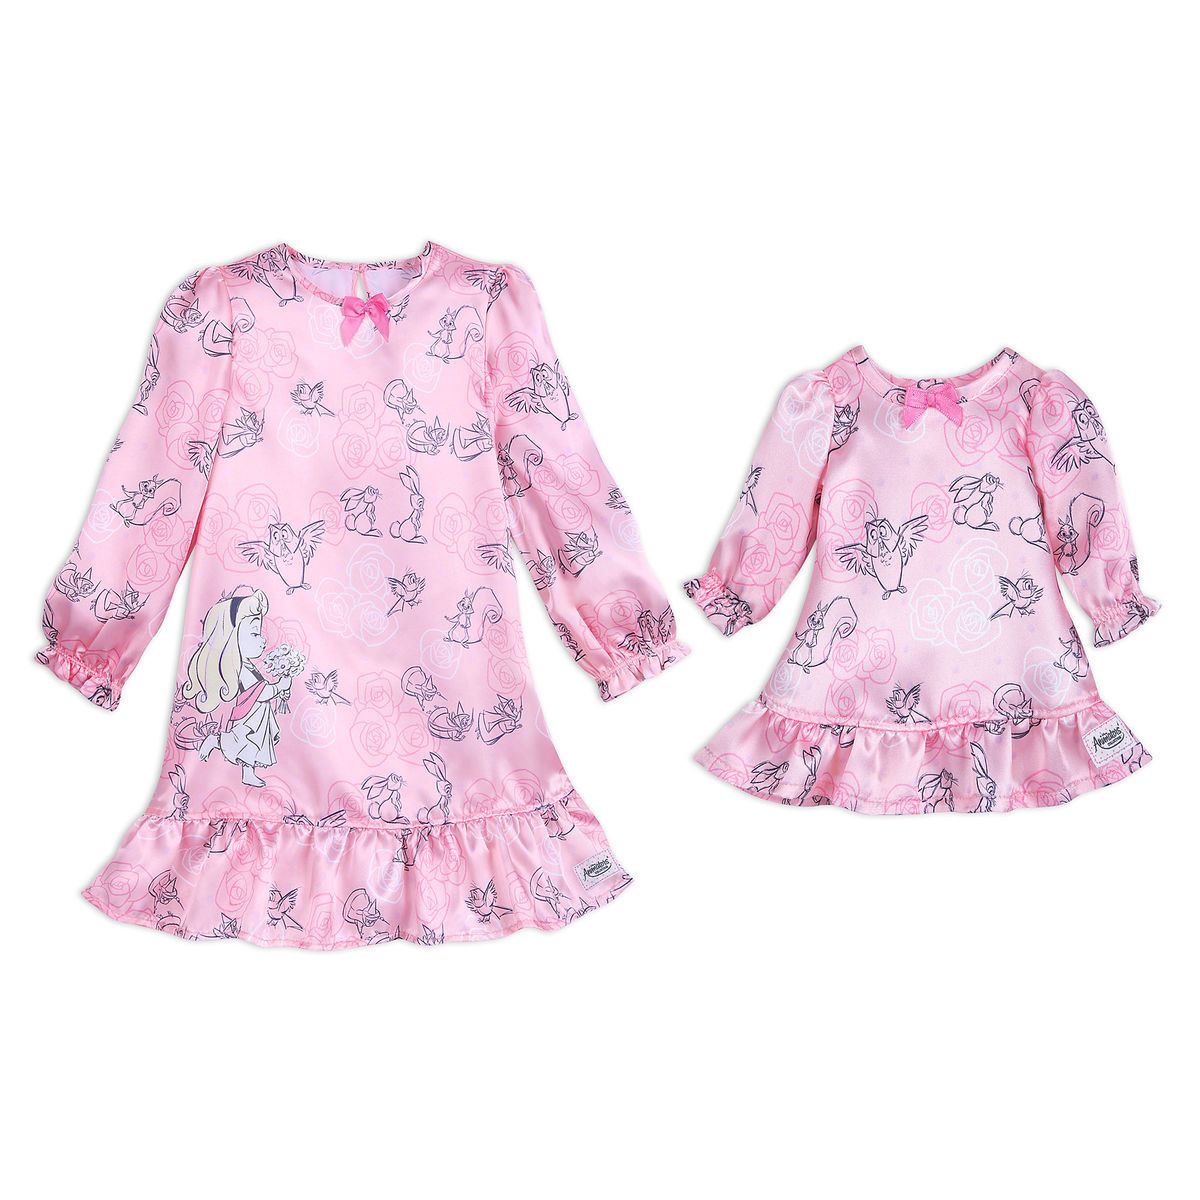 e861cae9fb Product Image of Disney Animators  Collection Aurora Sleep Gown Set for  Girls and Doll